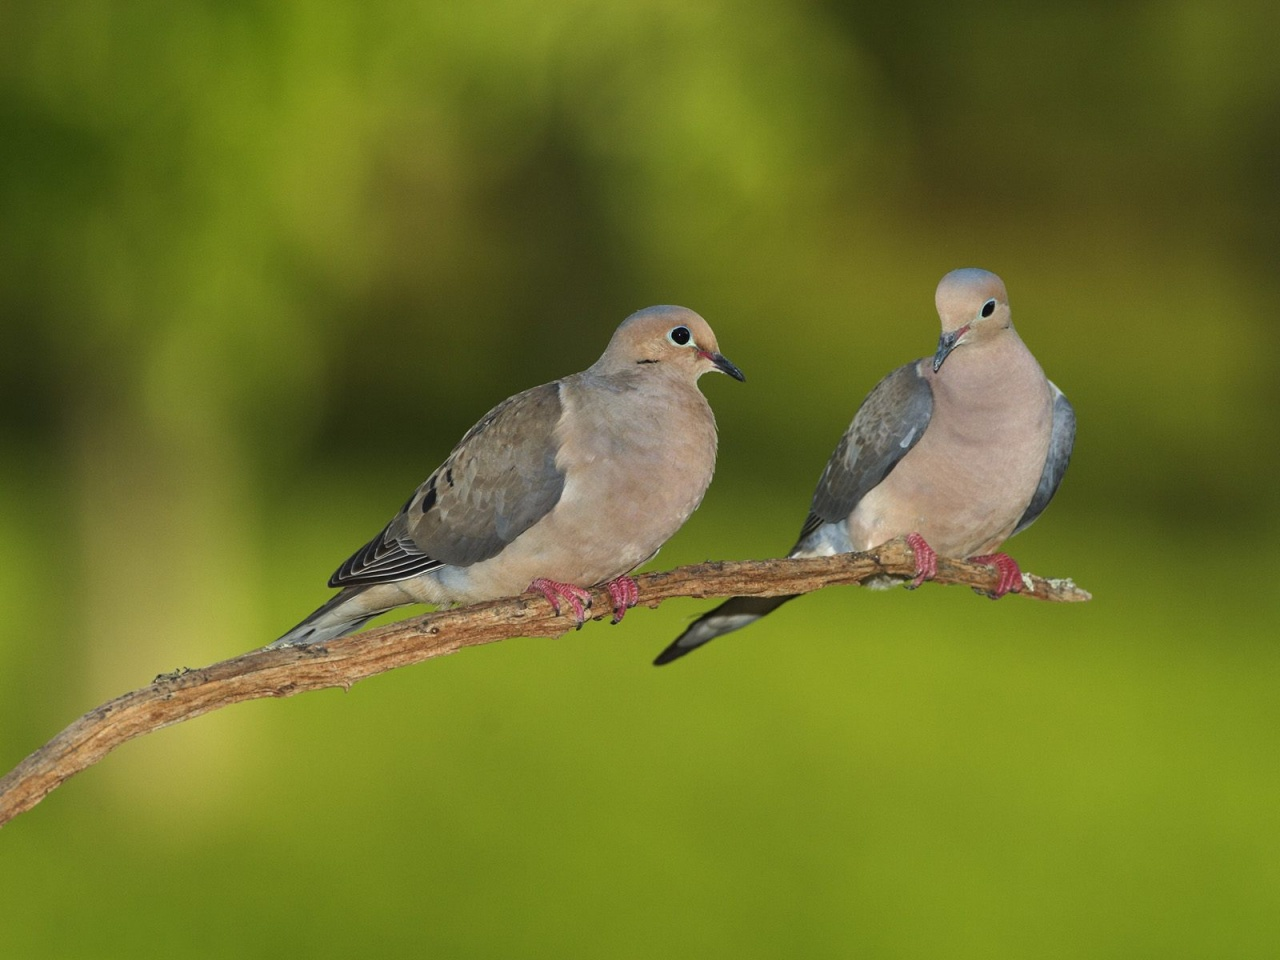 Pair Of Mourning Doves | Free Images at Clker.com - vector ...